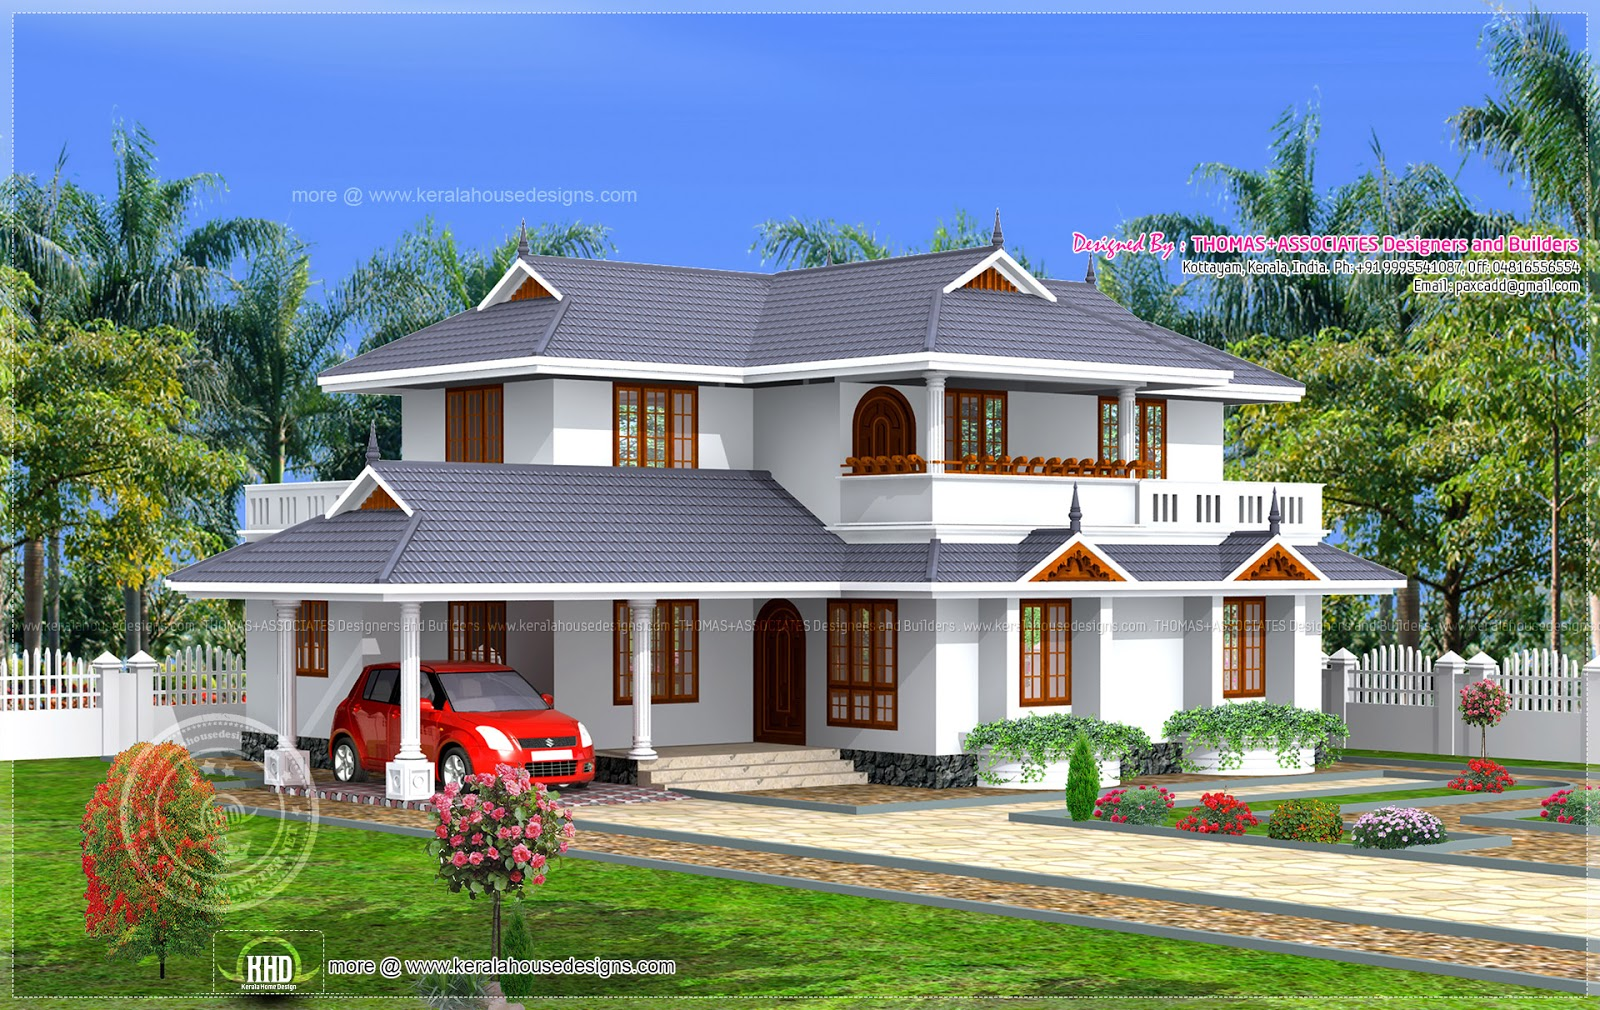 4 bedroom kerala model home in 204 home kerala for Home models in kerala